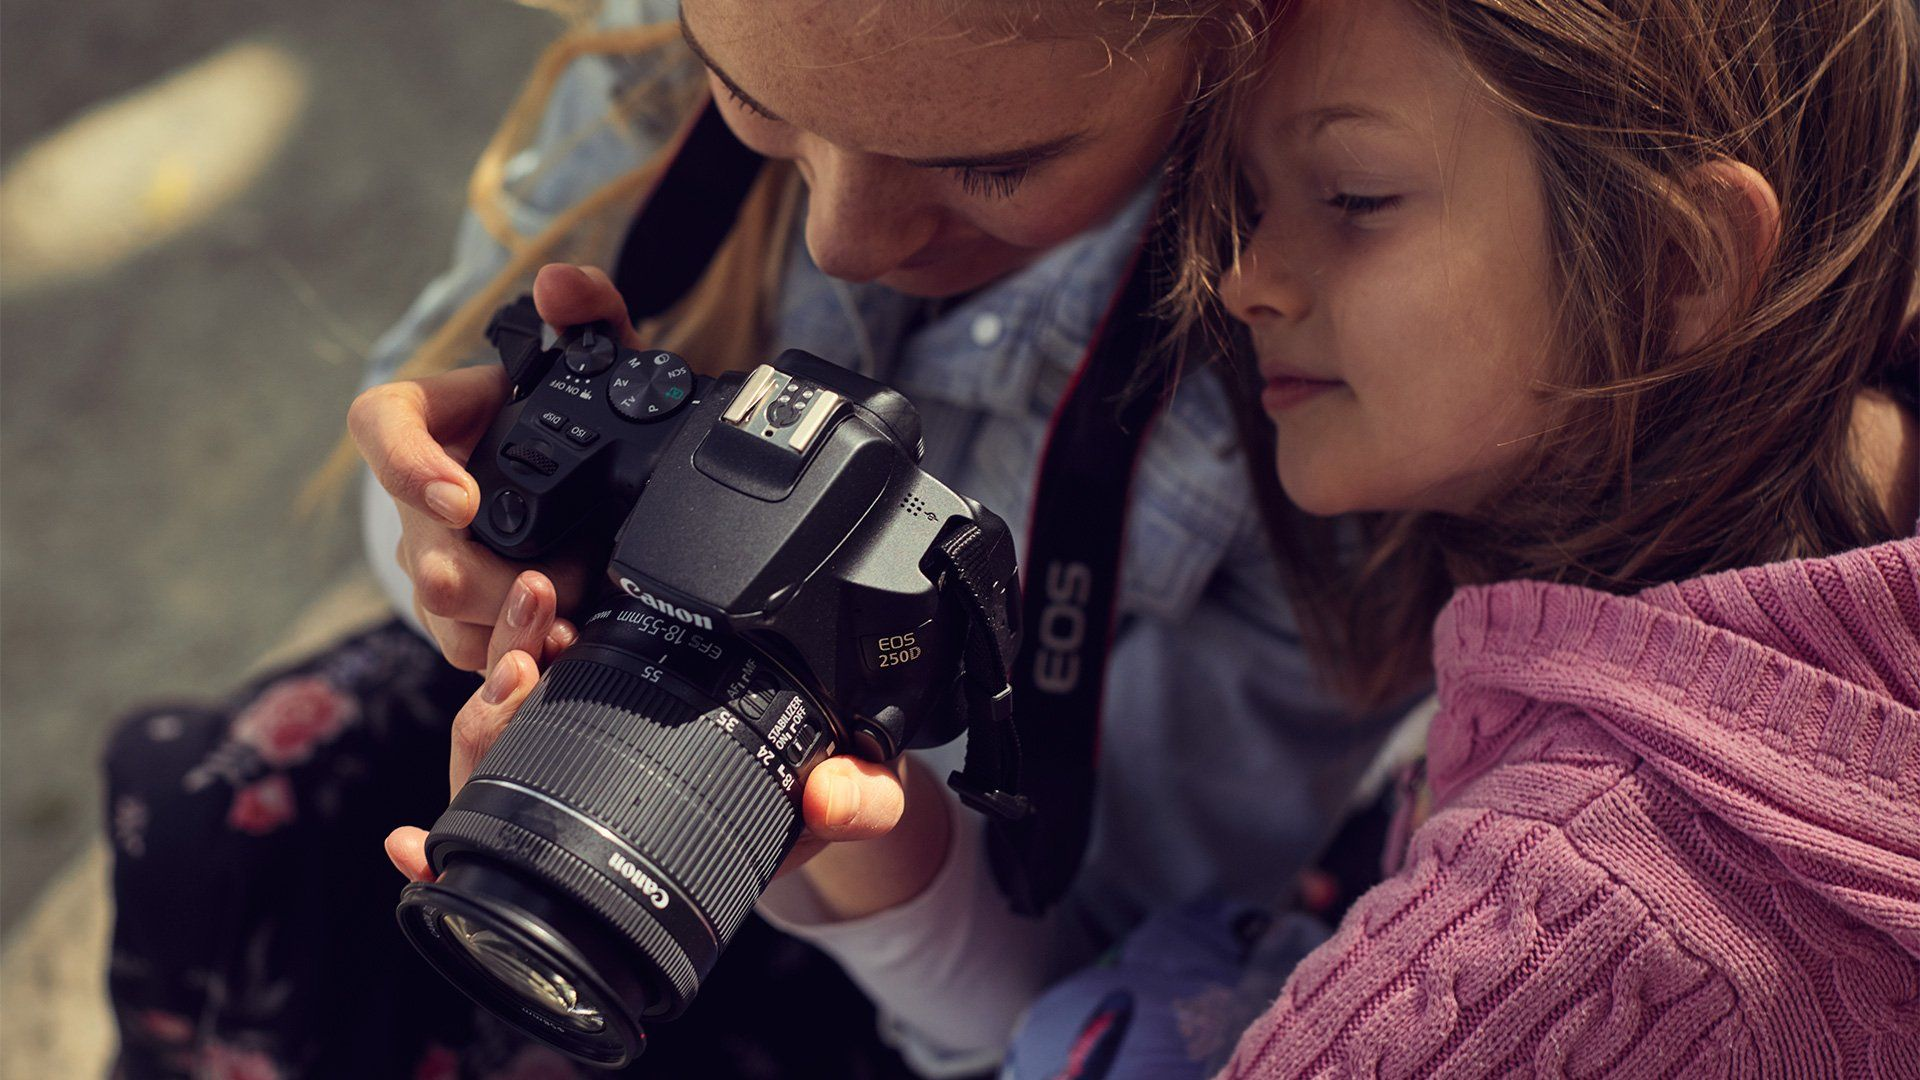 A woman lifts a Canon EOS 250D to take a photo of her daughter.